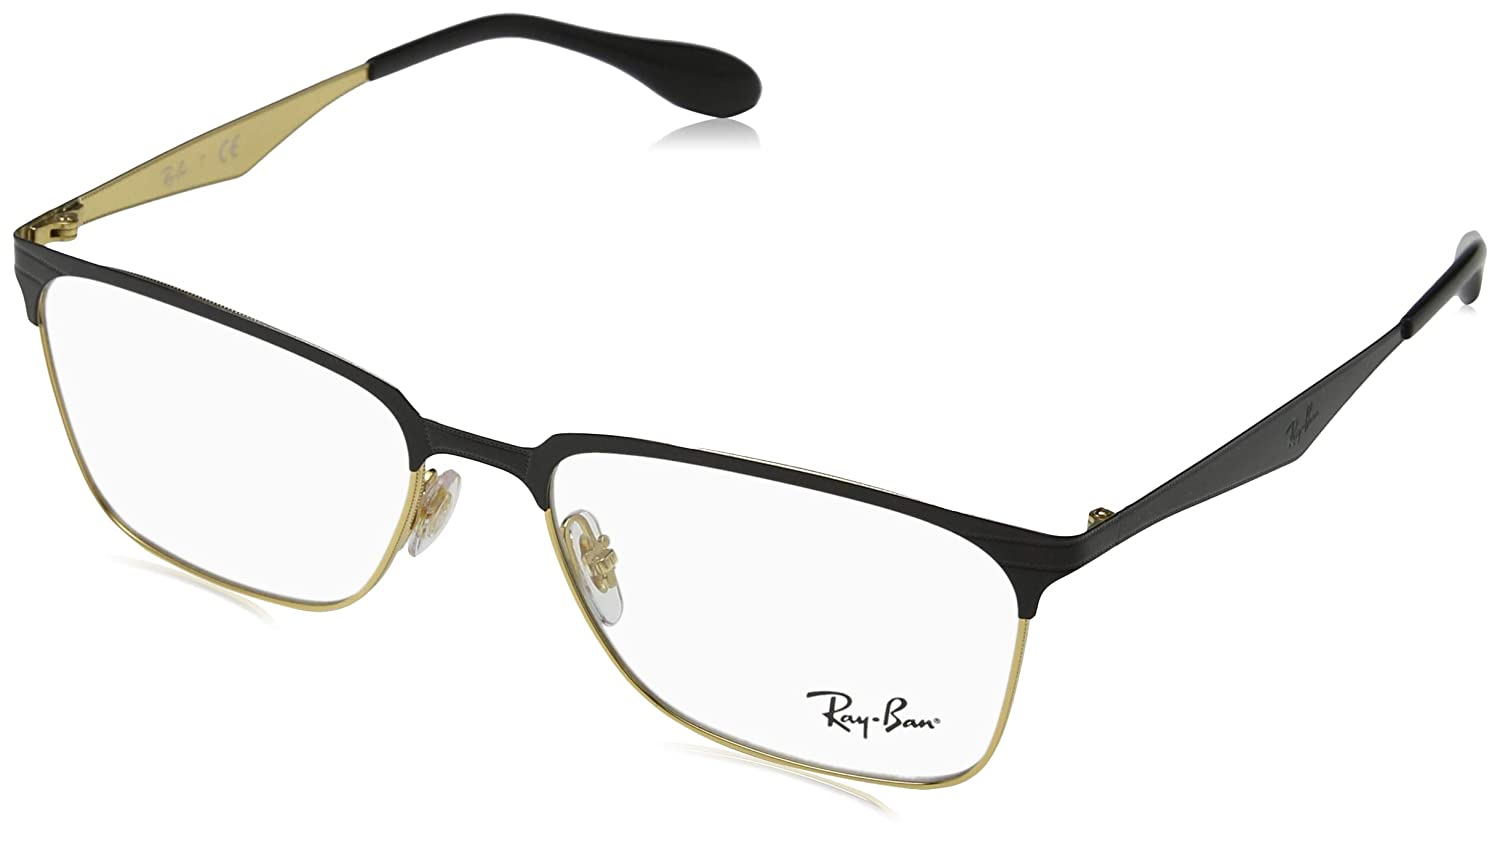 5b43aed3d92 Amazon.com  Ray-Ban Men s RX6344 Eyeglasses Gold Havana 54mm  Clothing